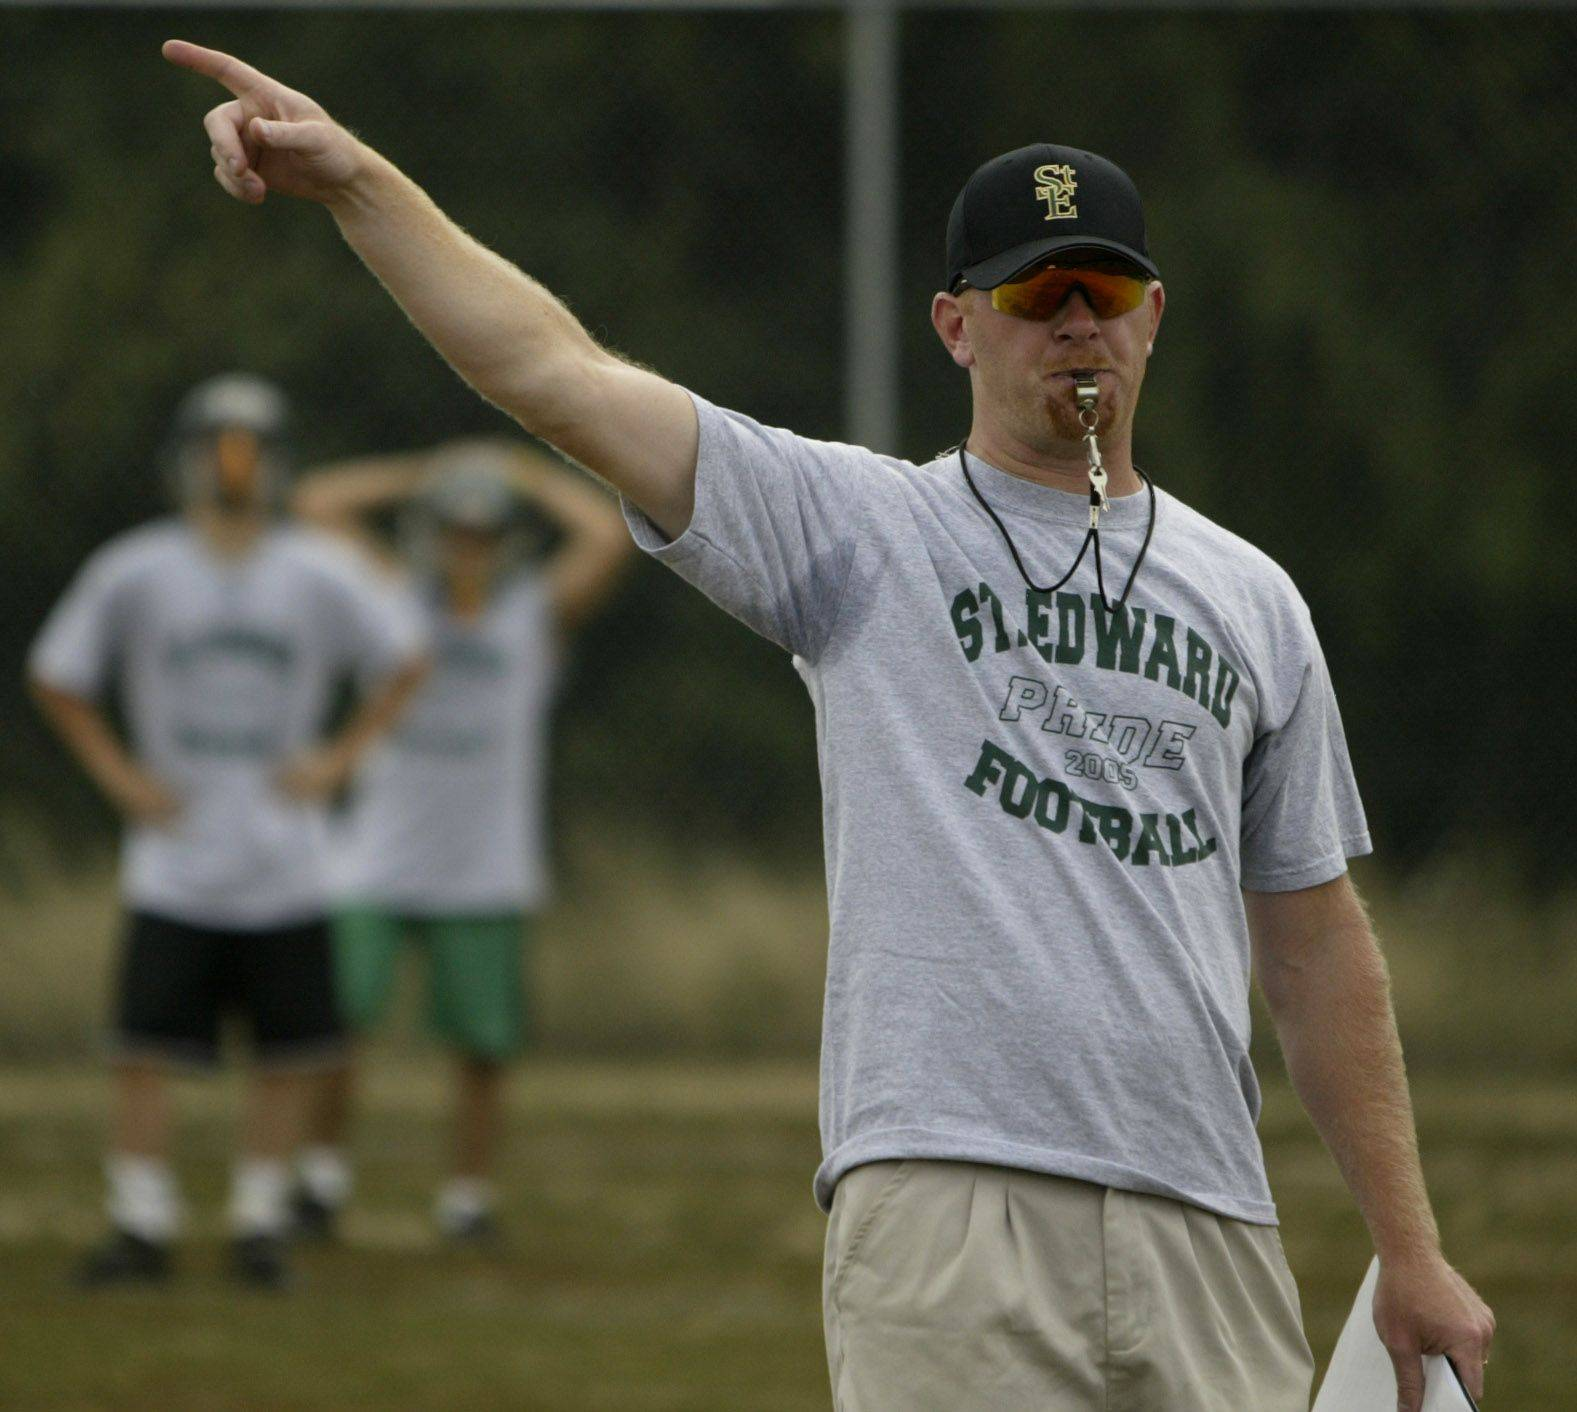 St. Edward's football team won the first playoff game in program history last fall under the direction of fifth-year head coach Mike Rolando.